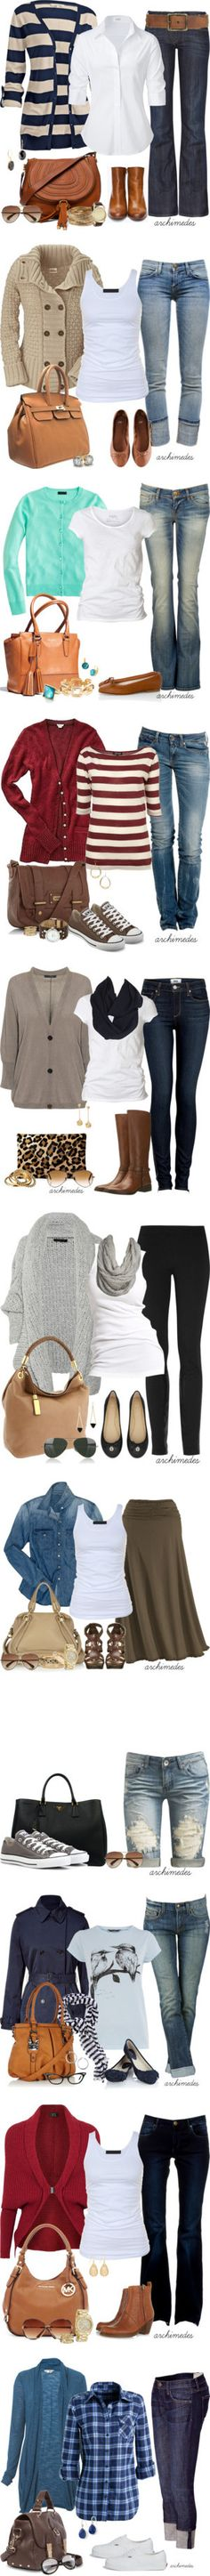 everyday outfits for fall